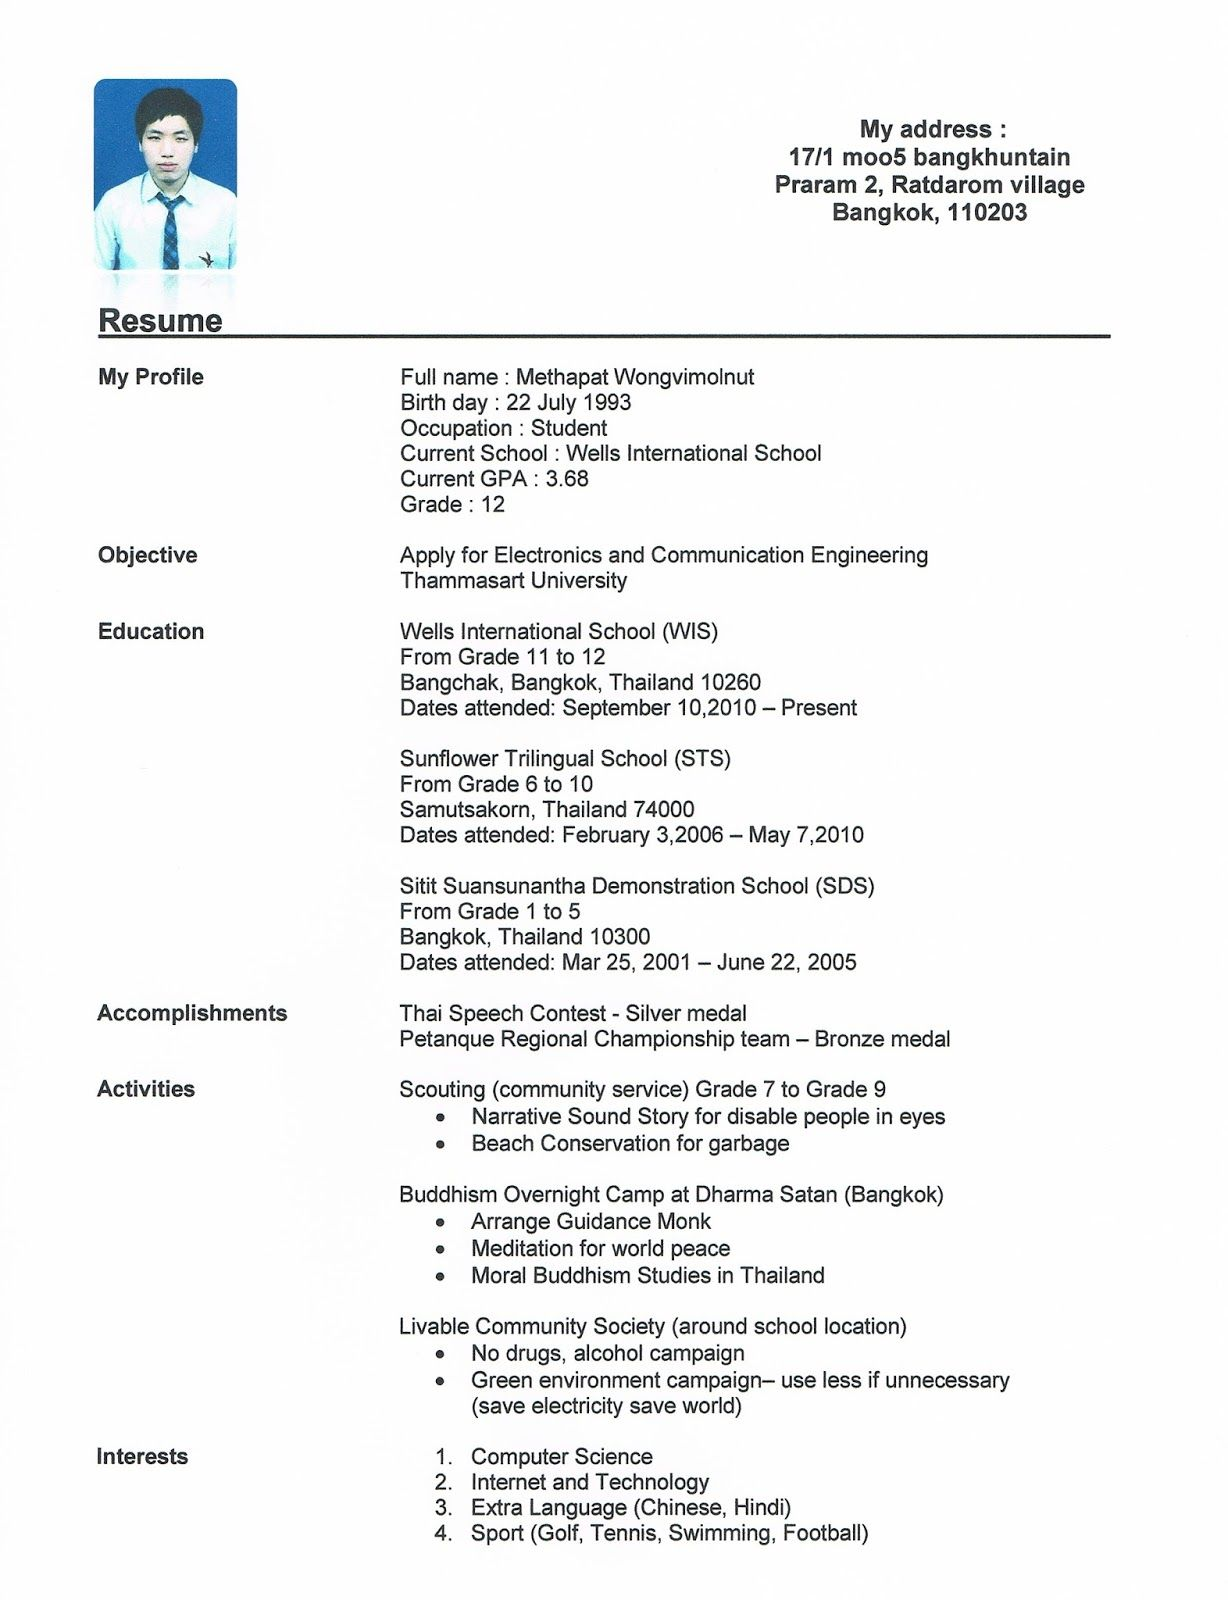 sample job resume templates for high school students student even  - sample job resume templates for high school students student even withlimited work experience